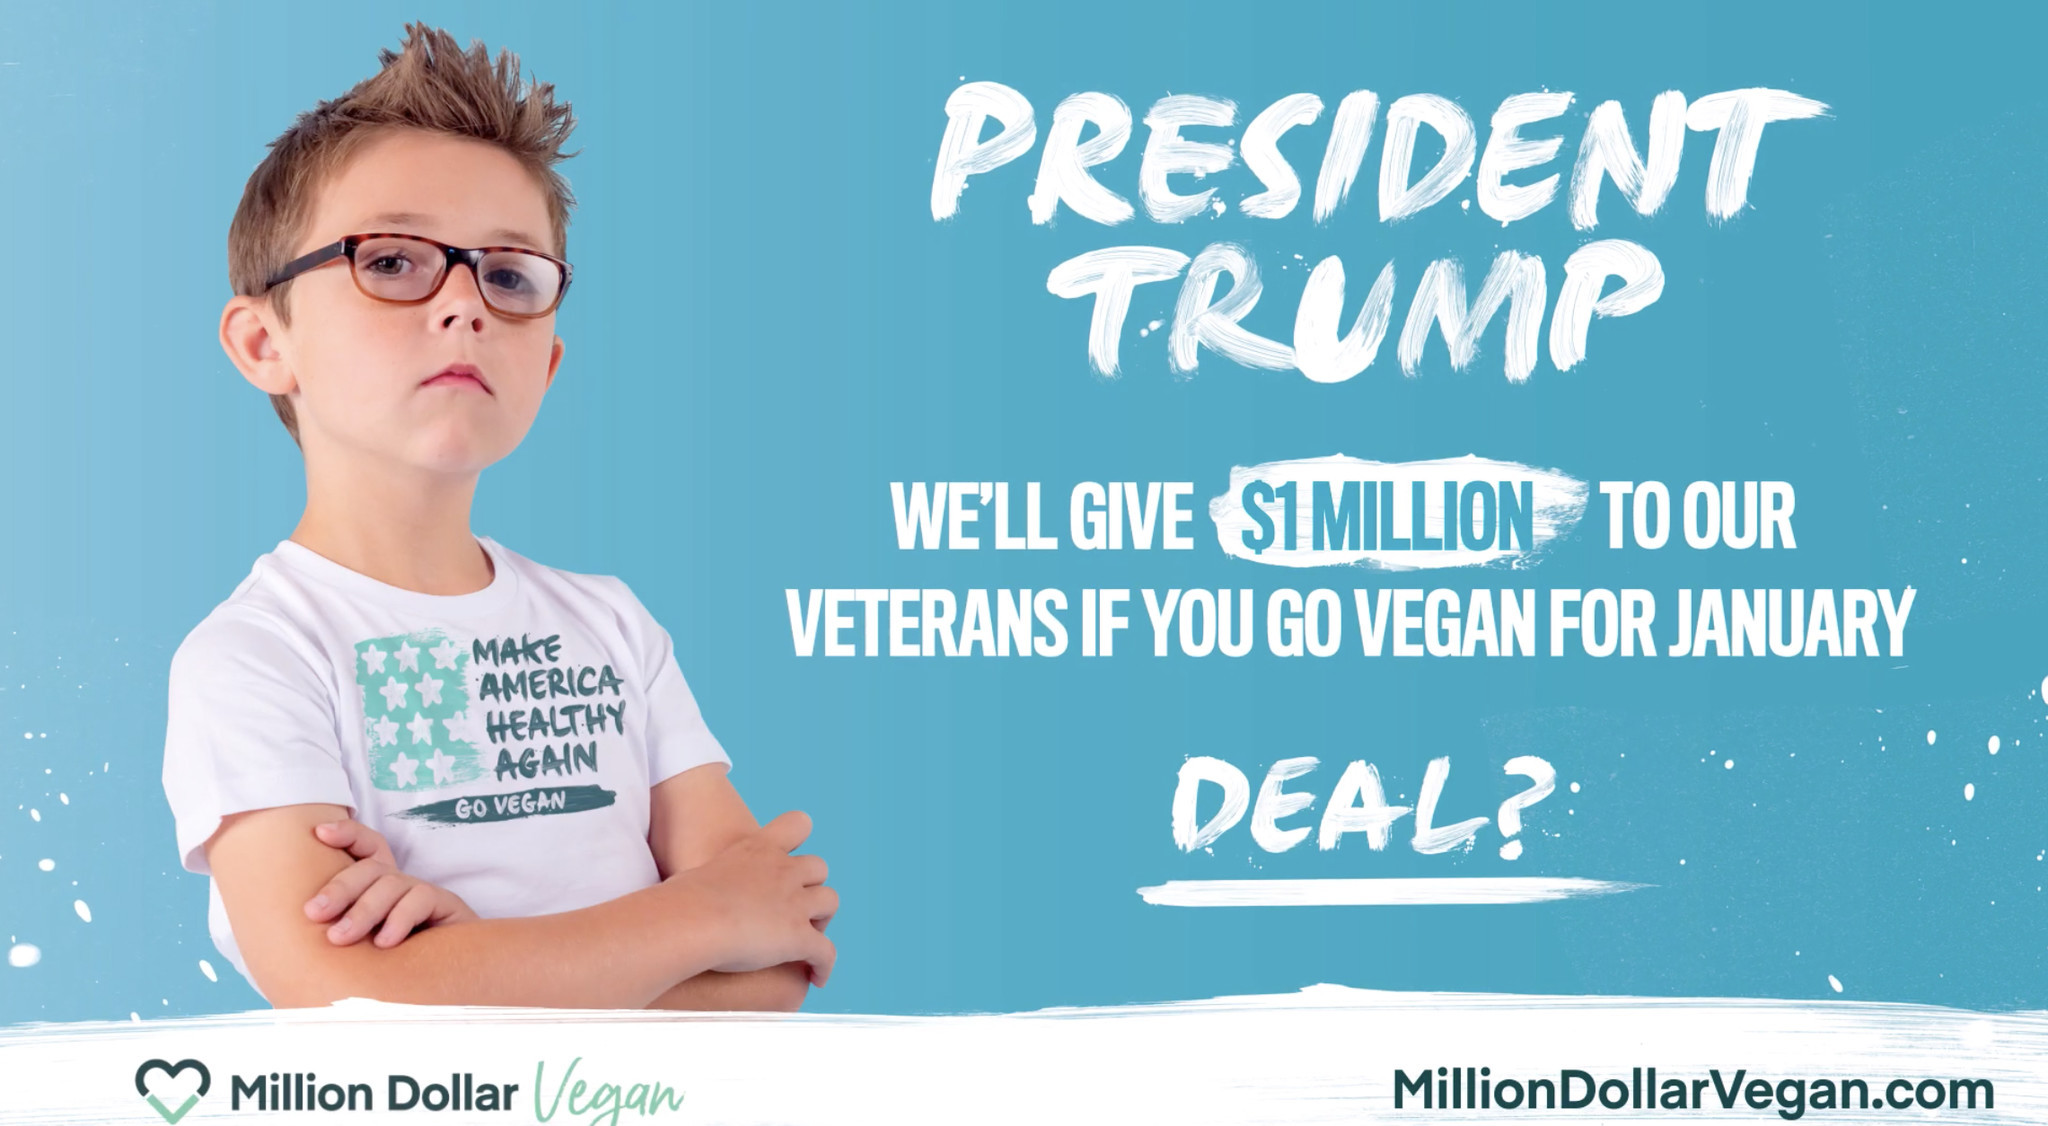 Kid to Trump: Eat vegan for January and veterans will get $1 million